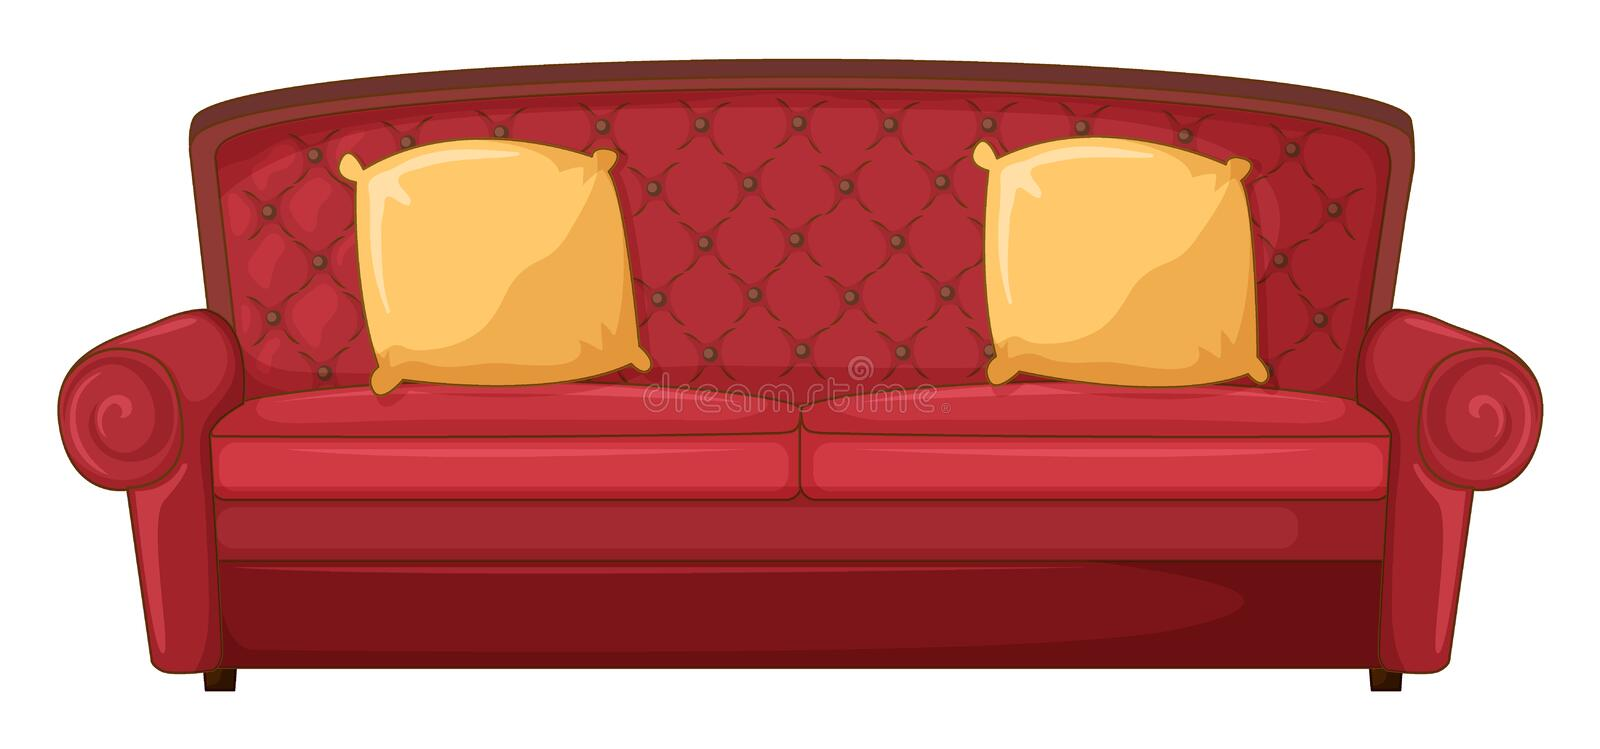 A Red Sofa And Yellow Cushions Stock Illustration Image 33693125